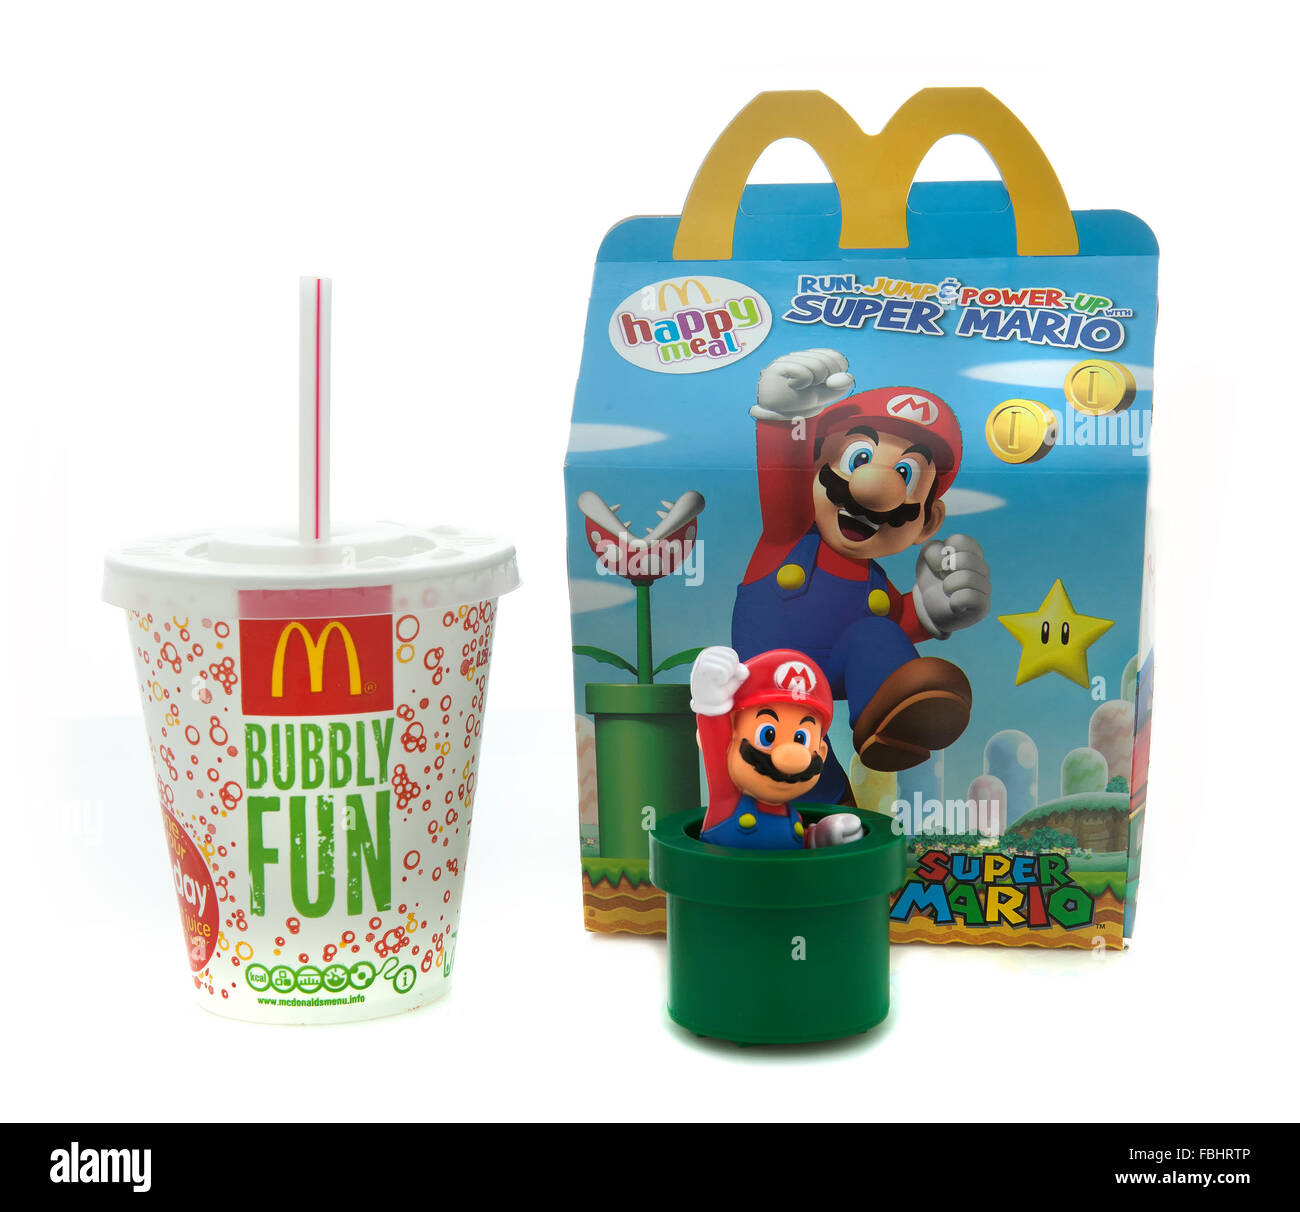 McDonalds Happy Meal on a White background - Stock Image